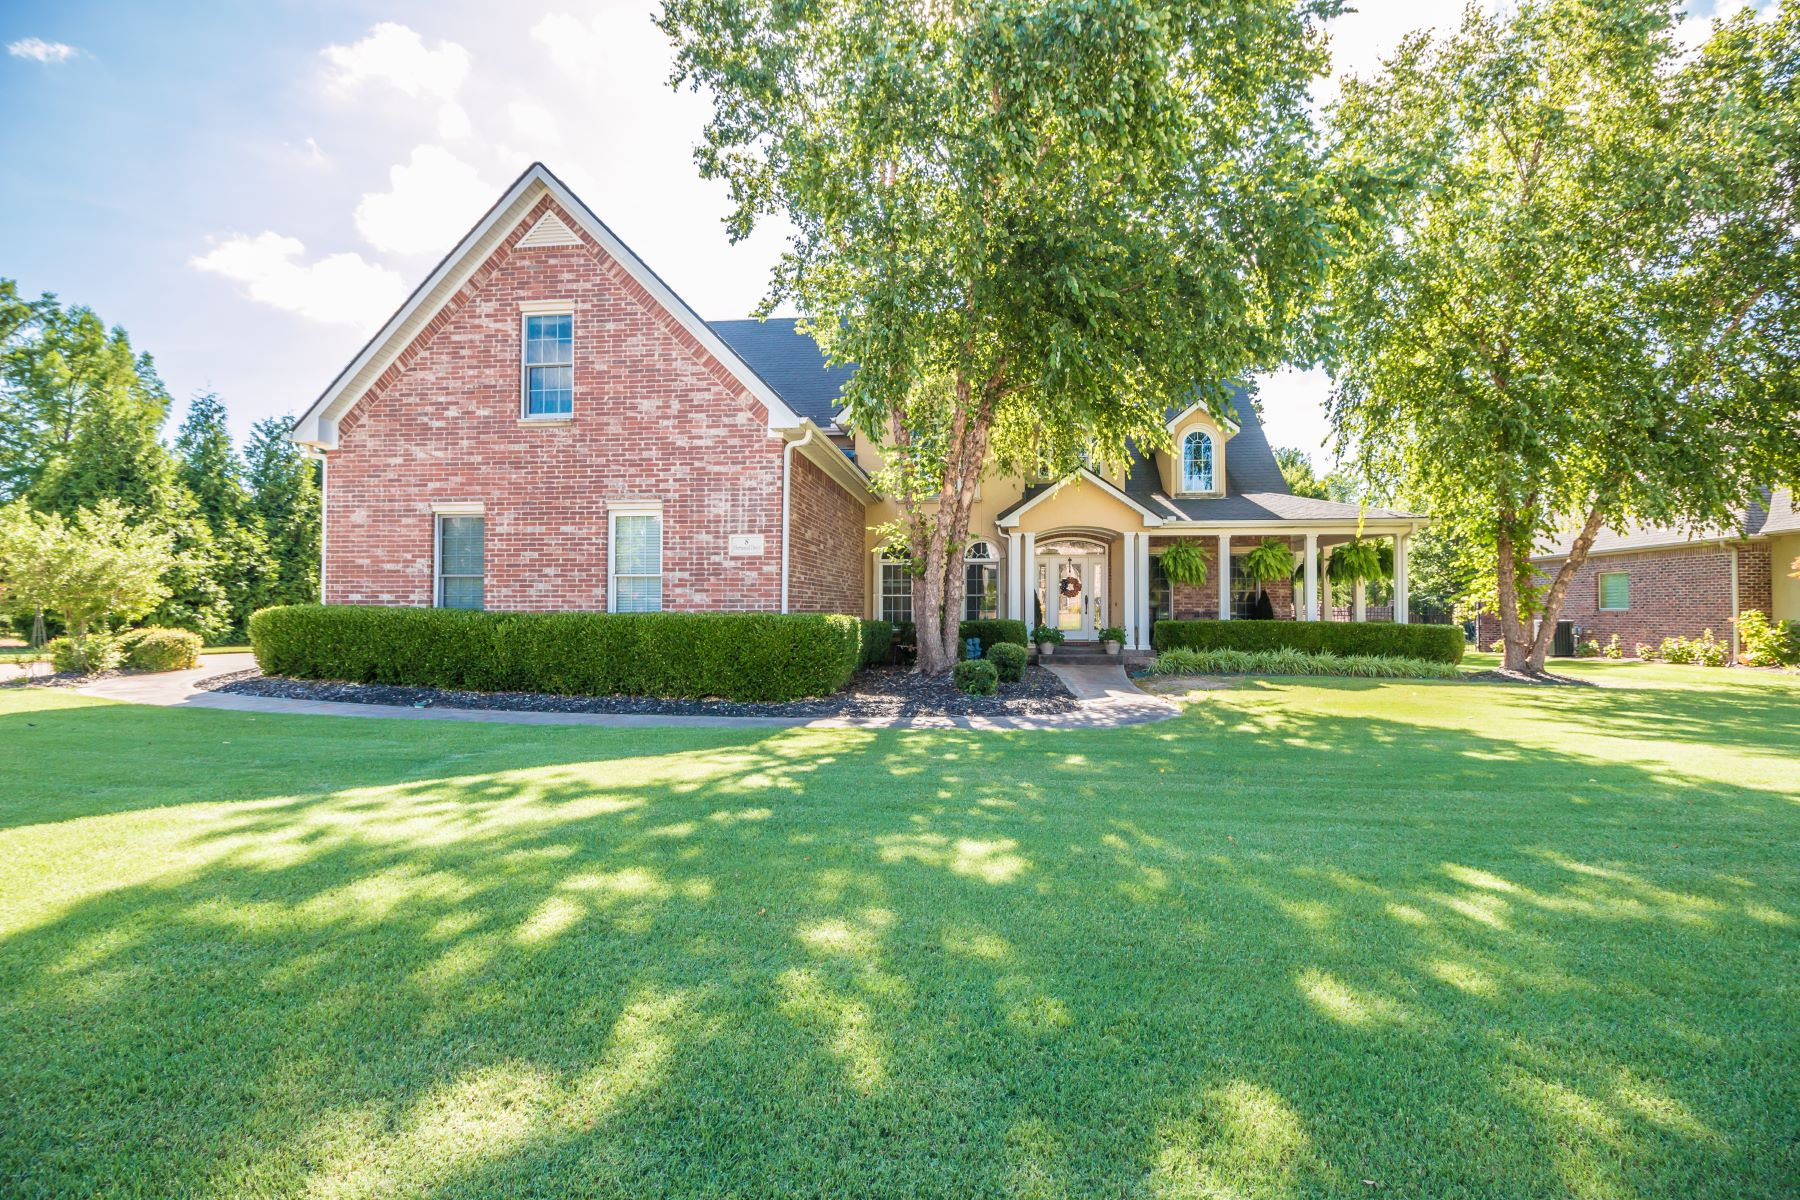 Single Family Homes for Sale at 8 S. Sherwood Drive Rogers, Arkansas 72758 United States